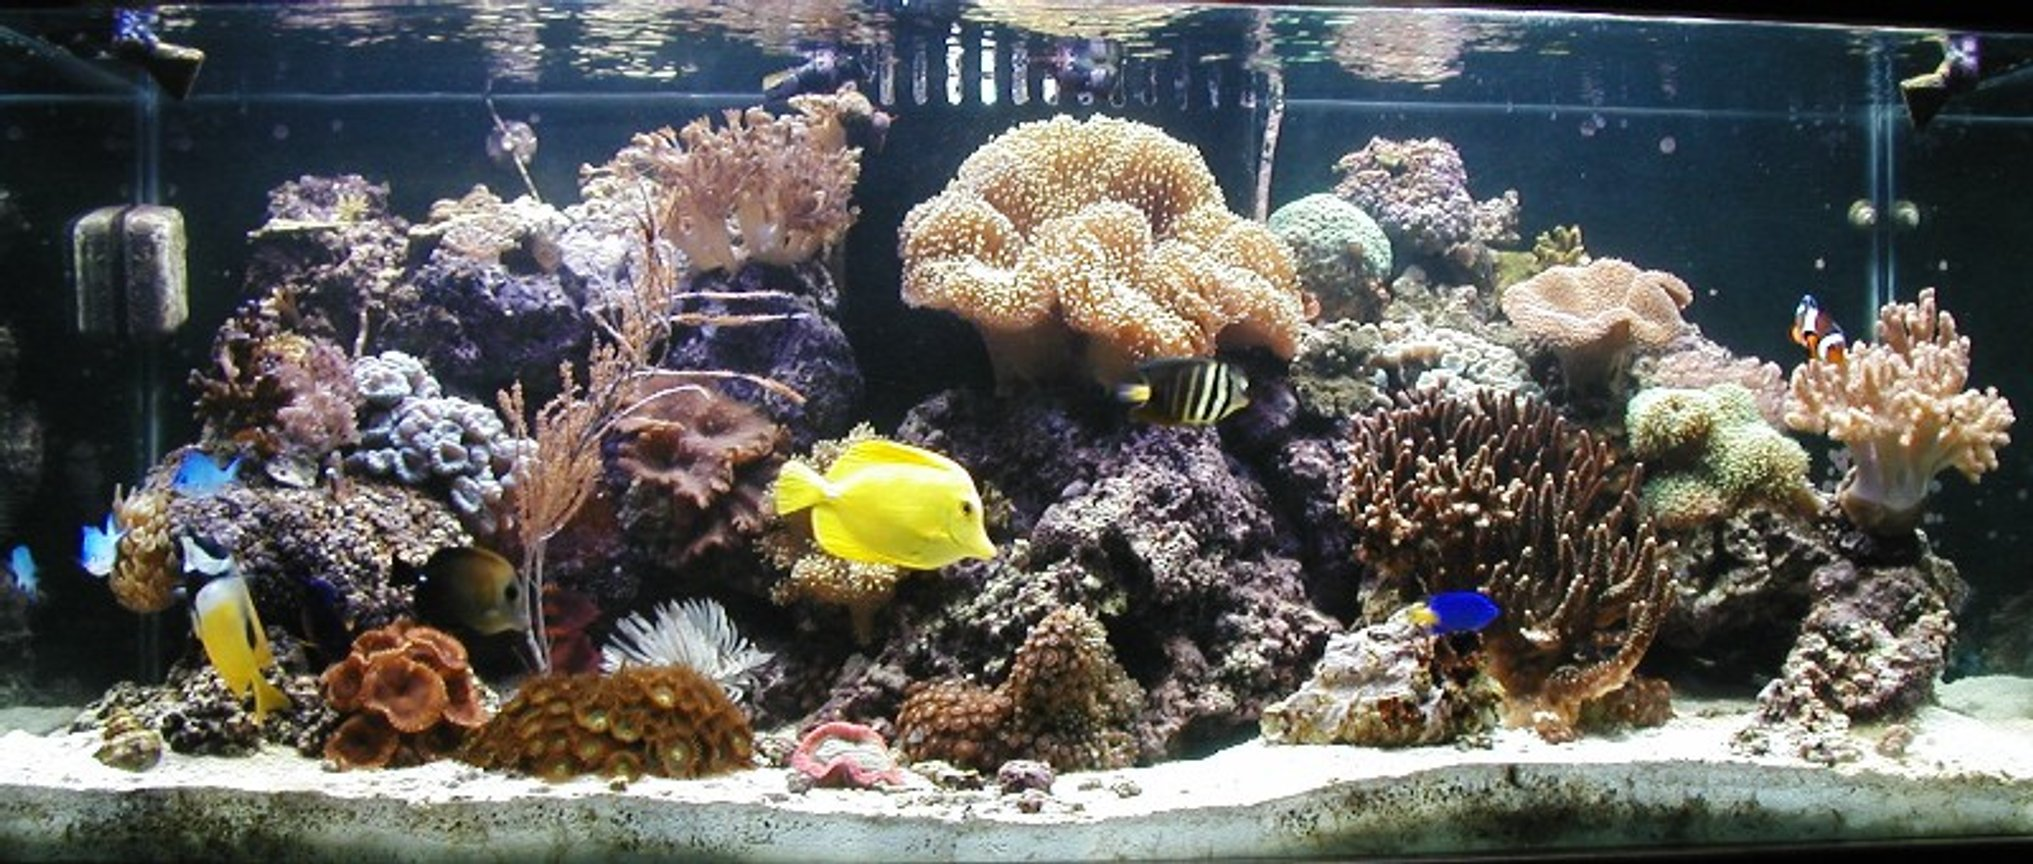 80 gallons reef tank (mostly live coral and fish) - 80g Reef with center overflow and Eco-system filtration, 2-250w Iwasaki MH and 2-110w VHO Actinic. Auto topoff